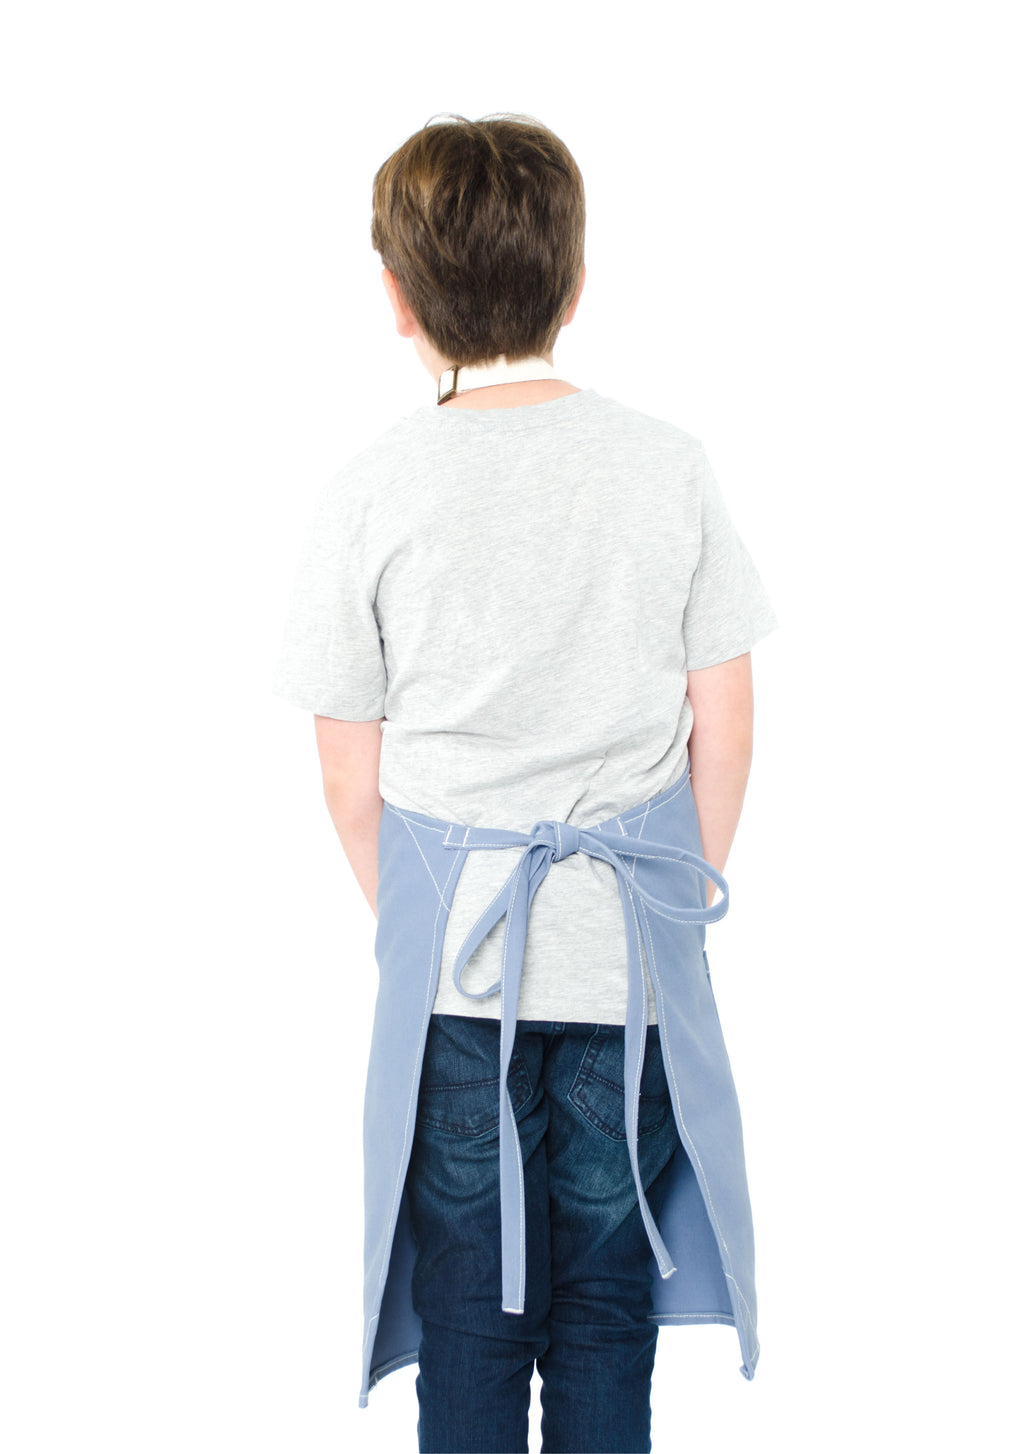 LUCCA KIDS APRON 8-12 YEARS CORNFLOWER BLUE